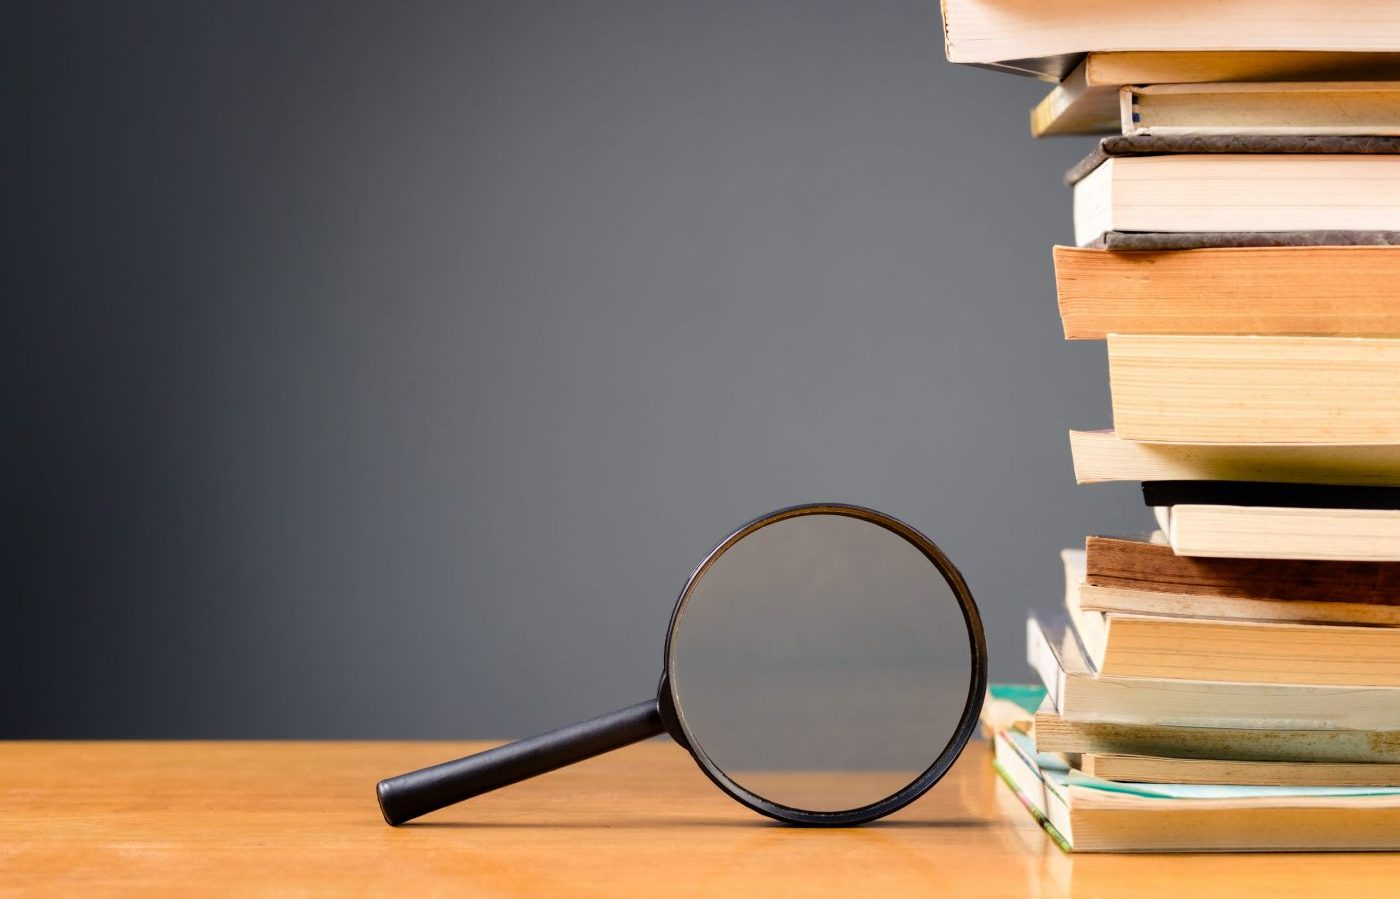 Magnifying glass and pile of books on the wood desk with copy space